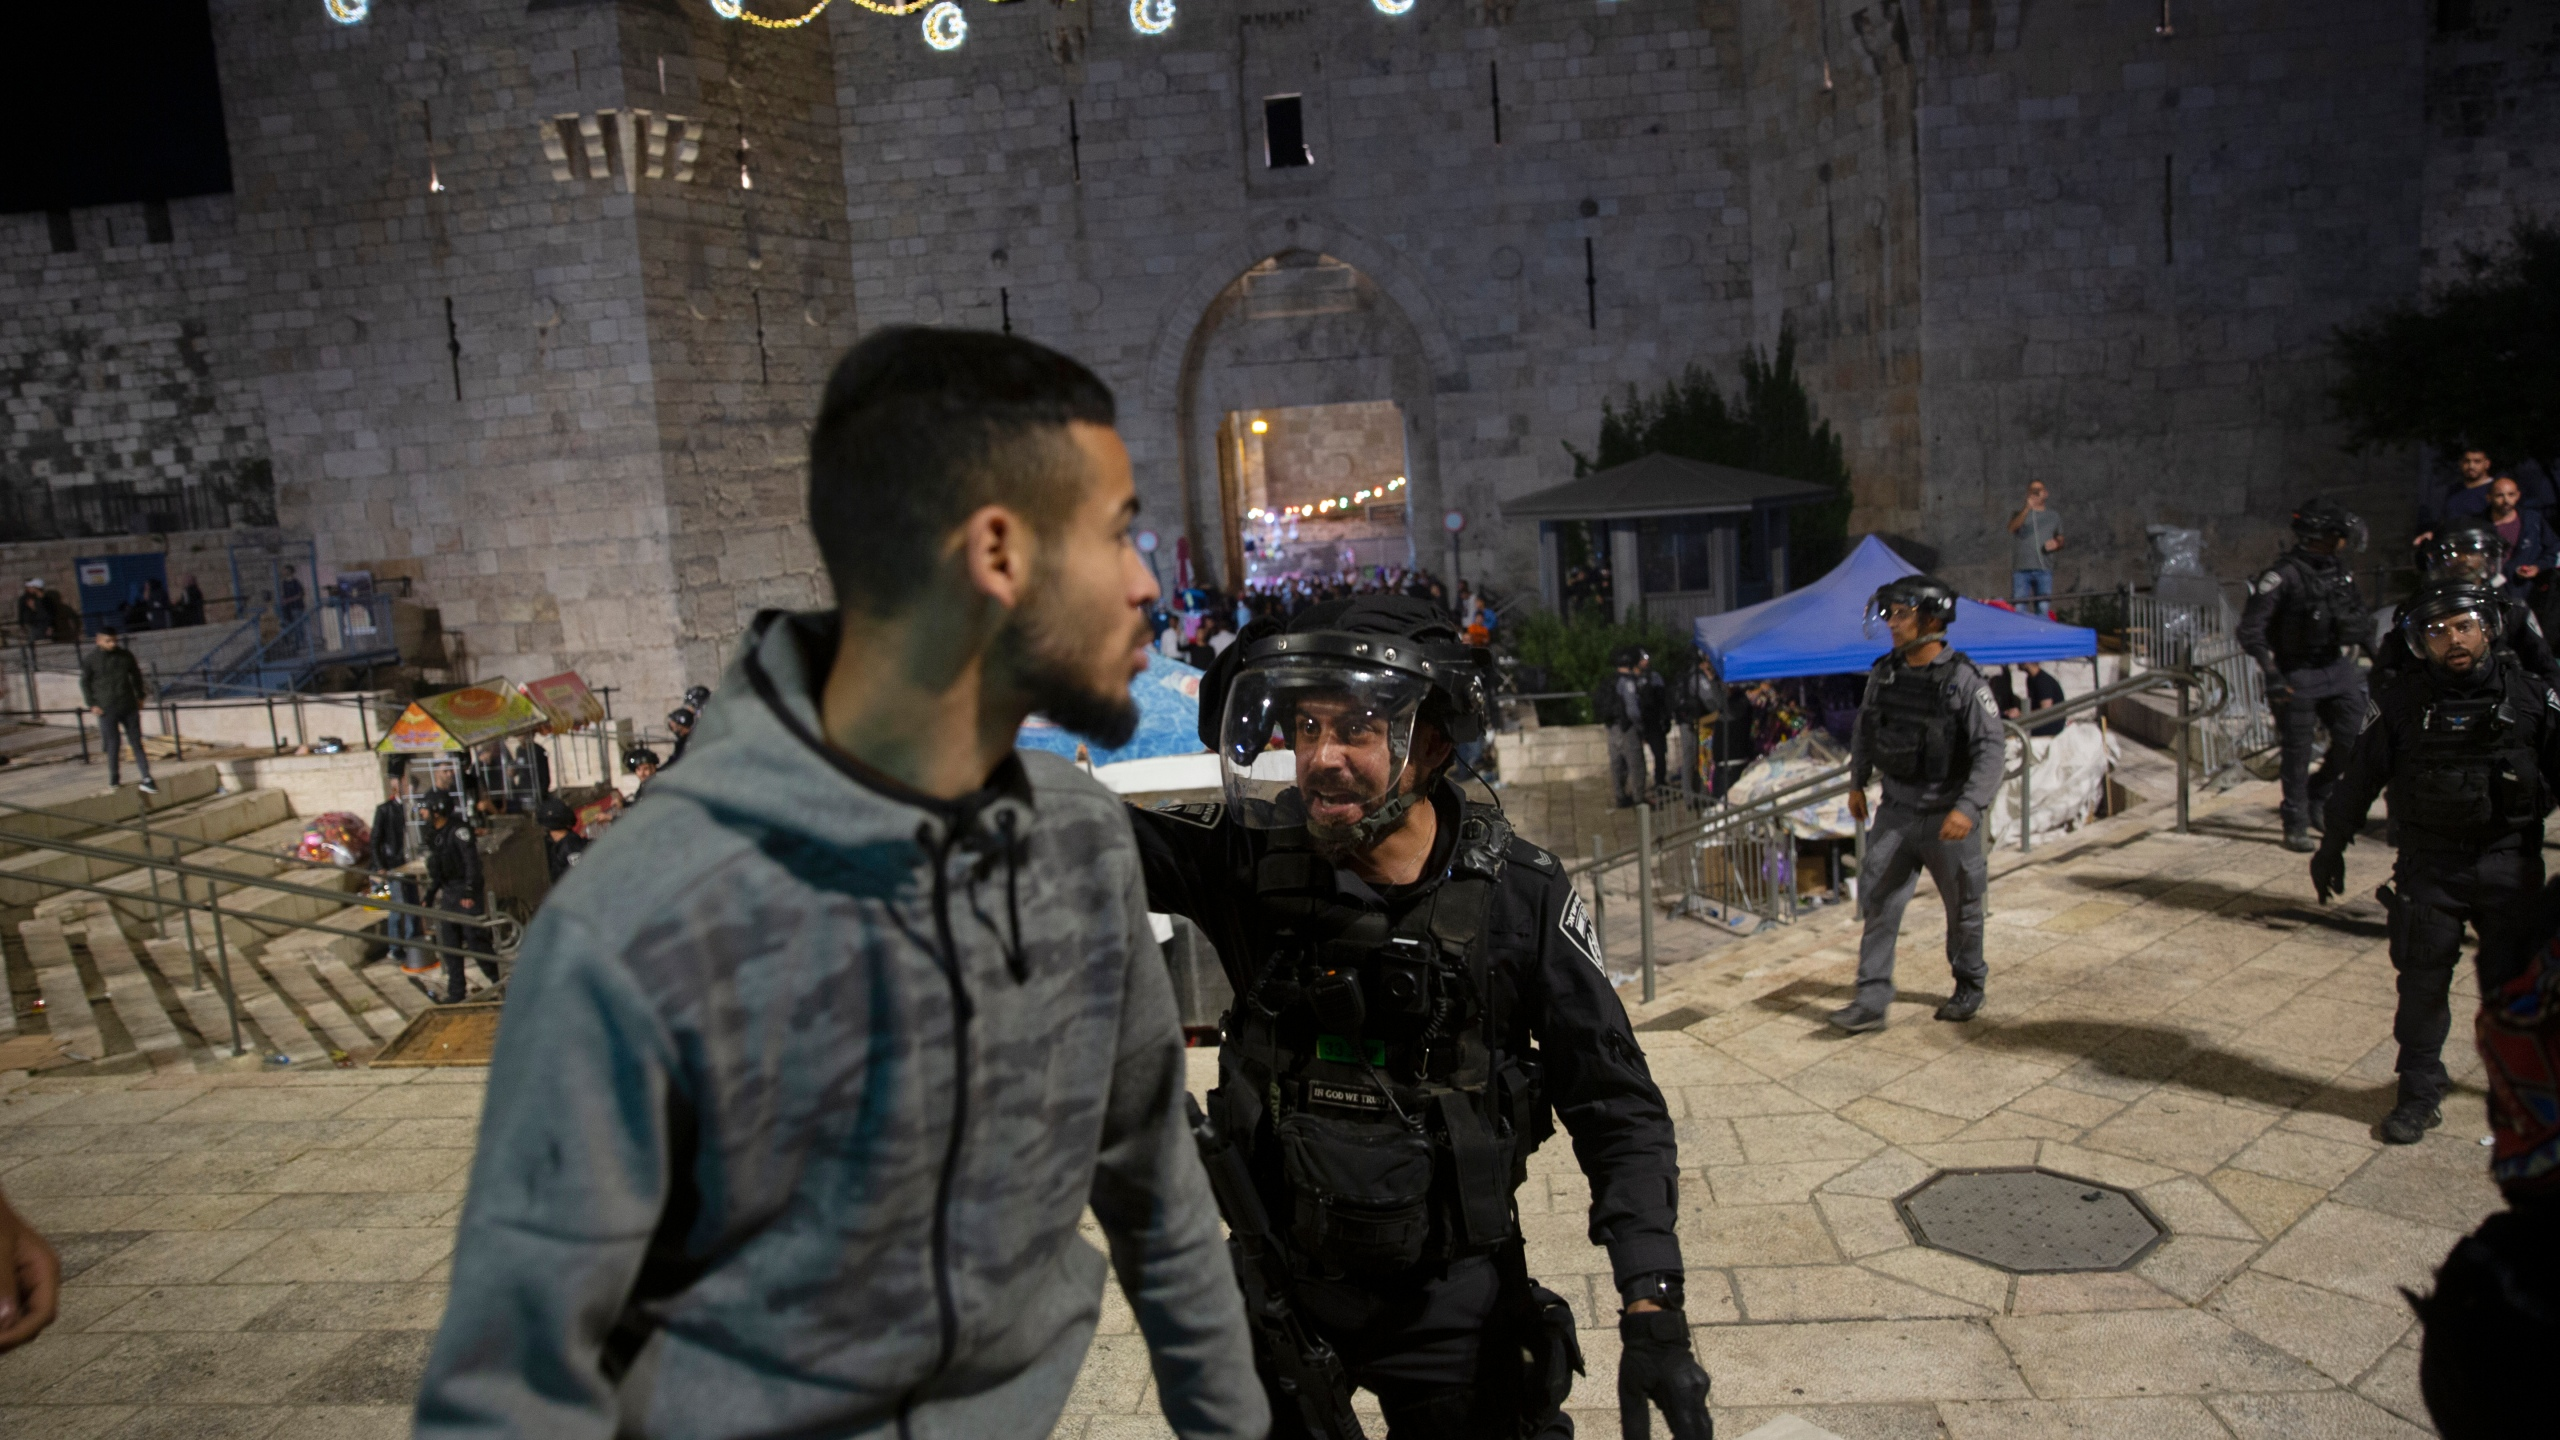 An Israeli policeman shouts at a Palestinian man to leave the Damascus Gate to the Old City of Jerusalem after clashes at the Al-Aqsa Mosque compound on May 7, 2021. (Maya Alleruzzo / Associated Press)